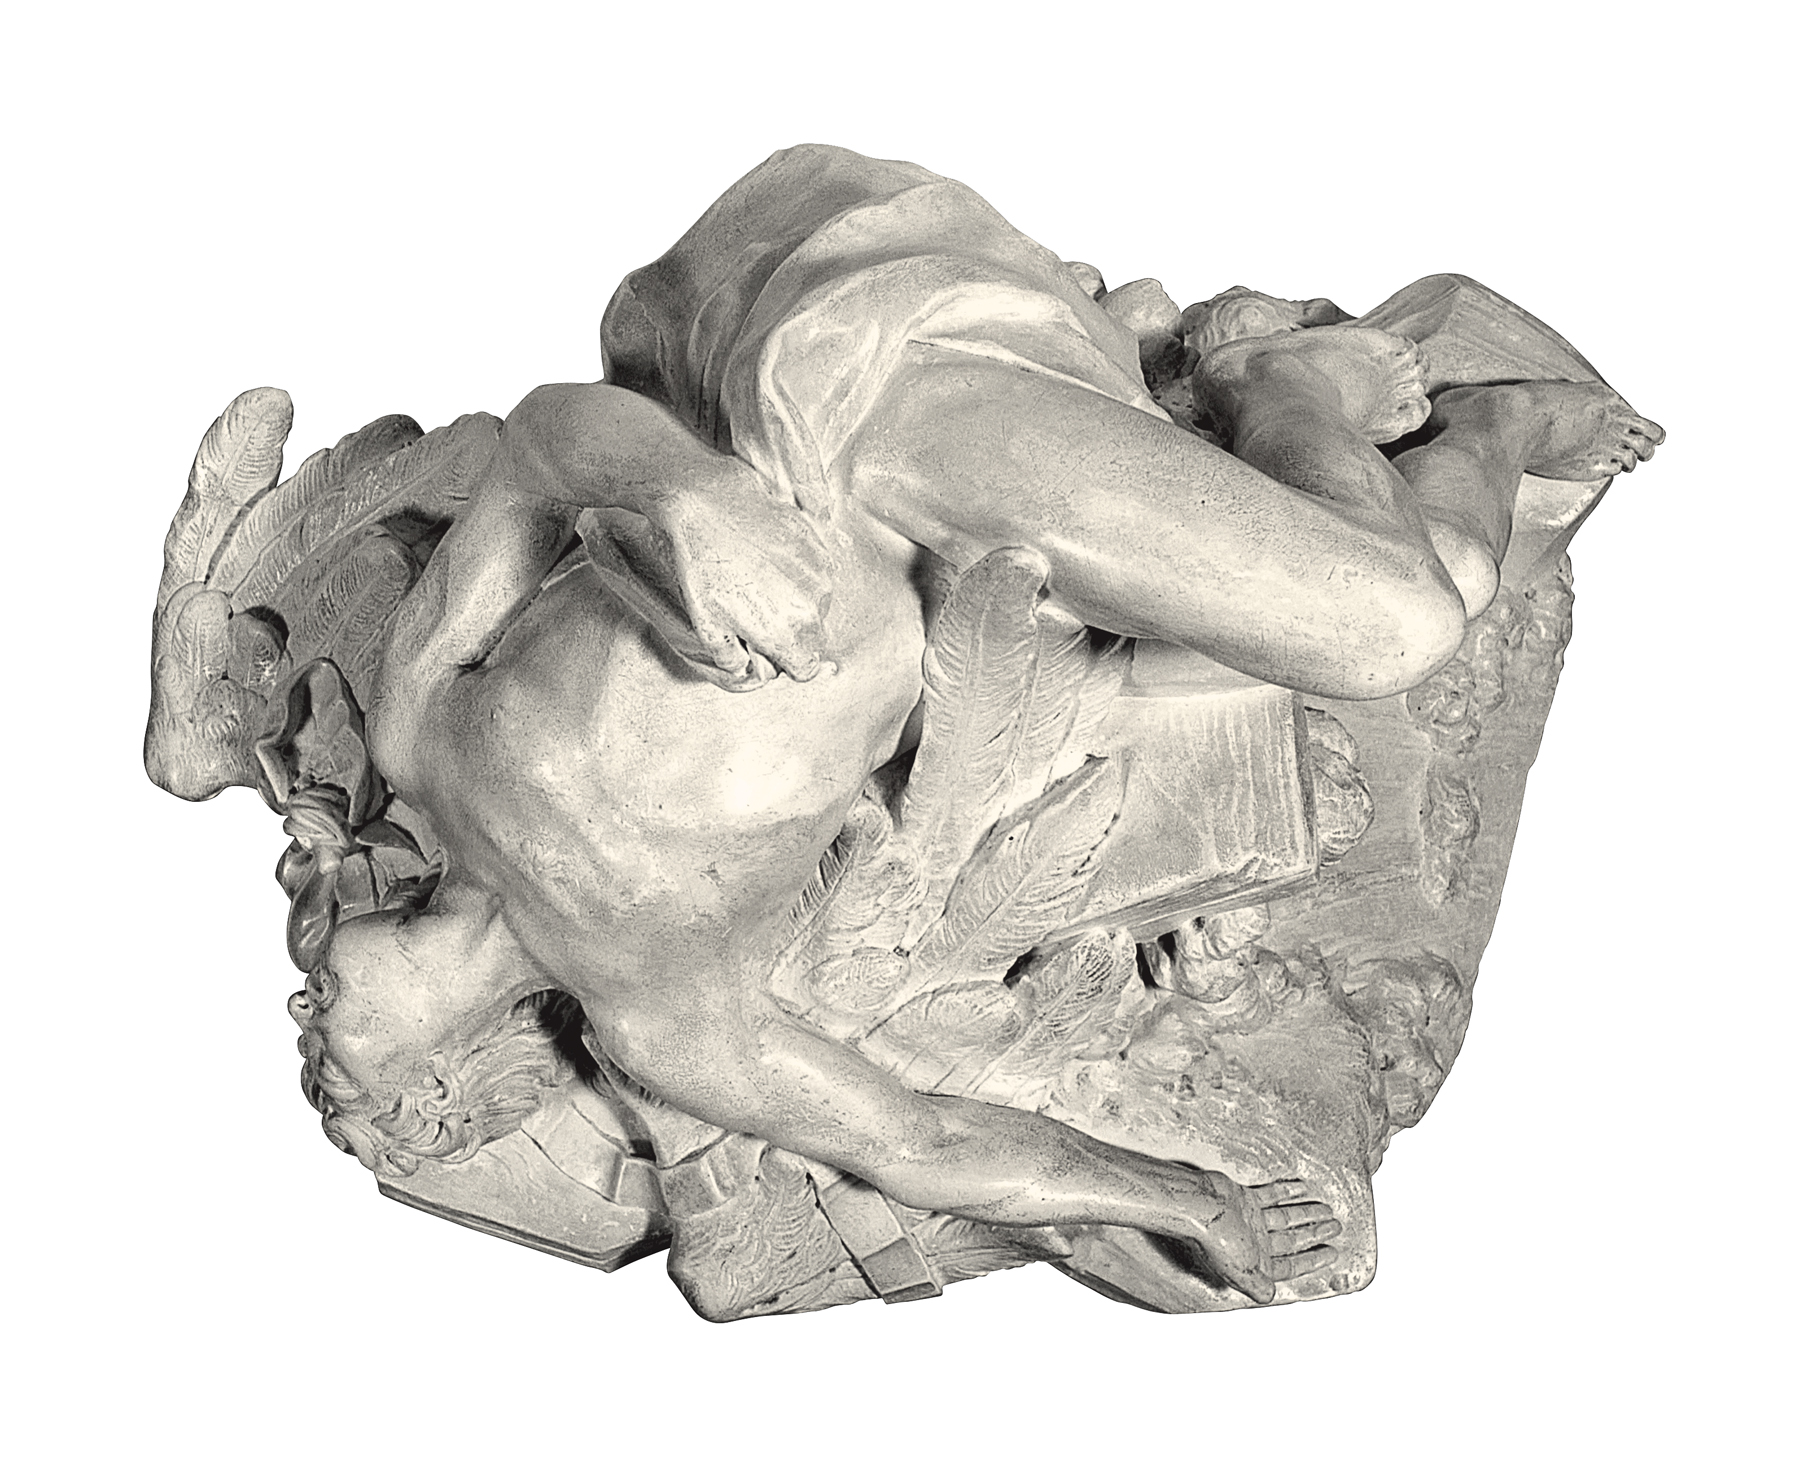 The fall of Icarus (cast in plaster)